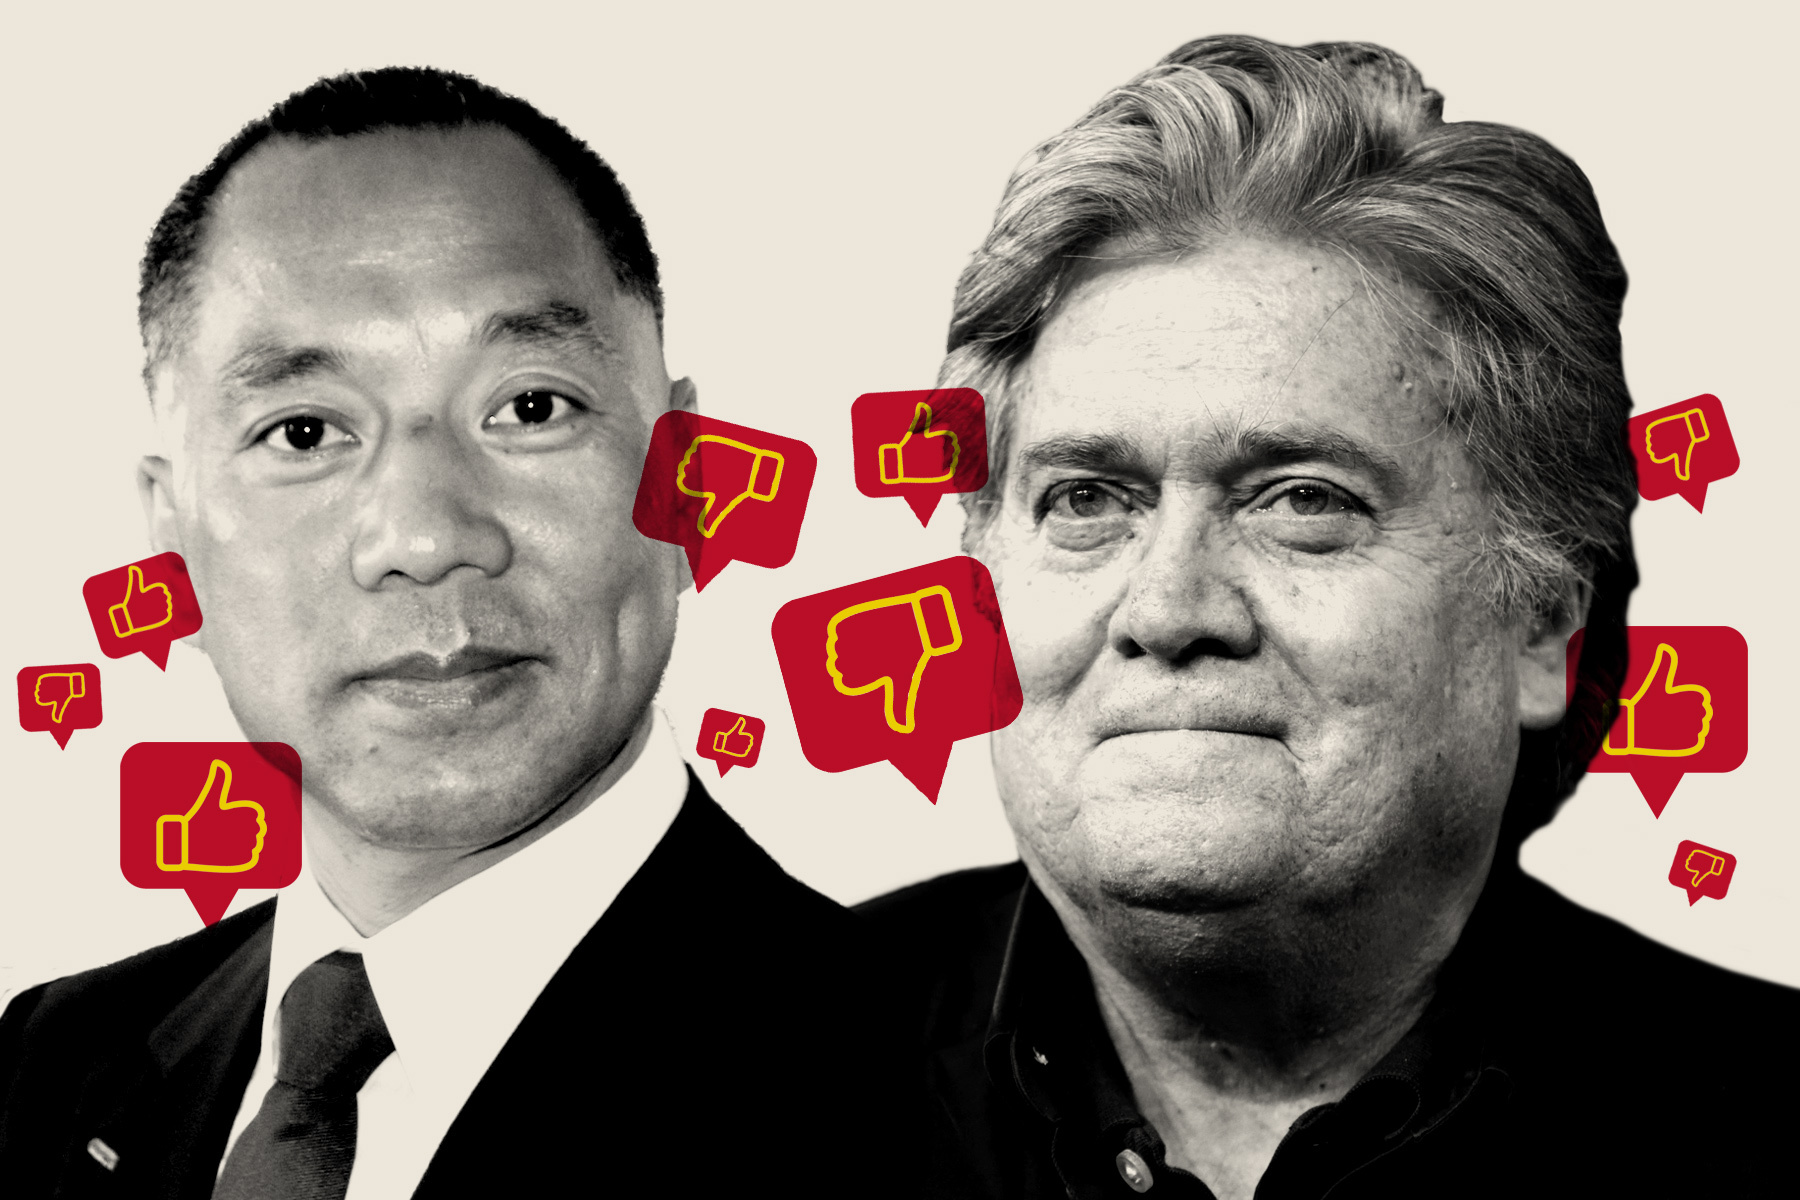 How An Anti-China Website Became a Megaphone for Election Misinformation